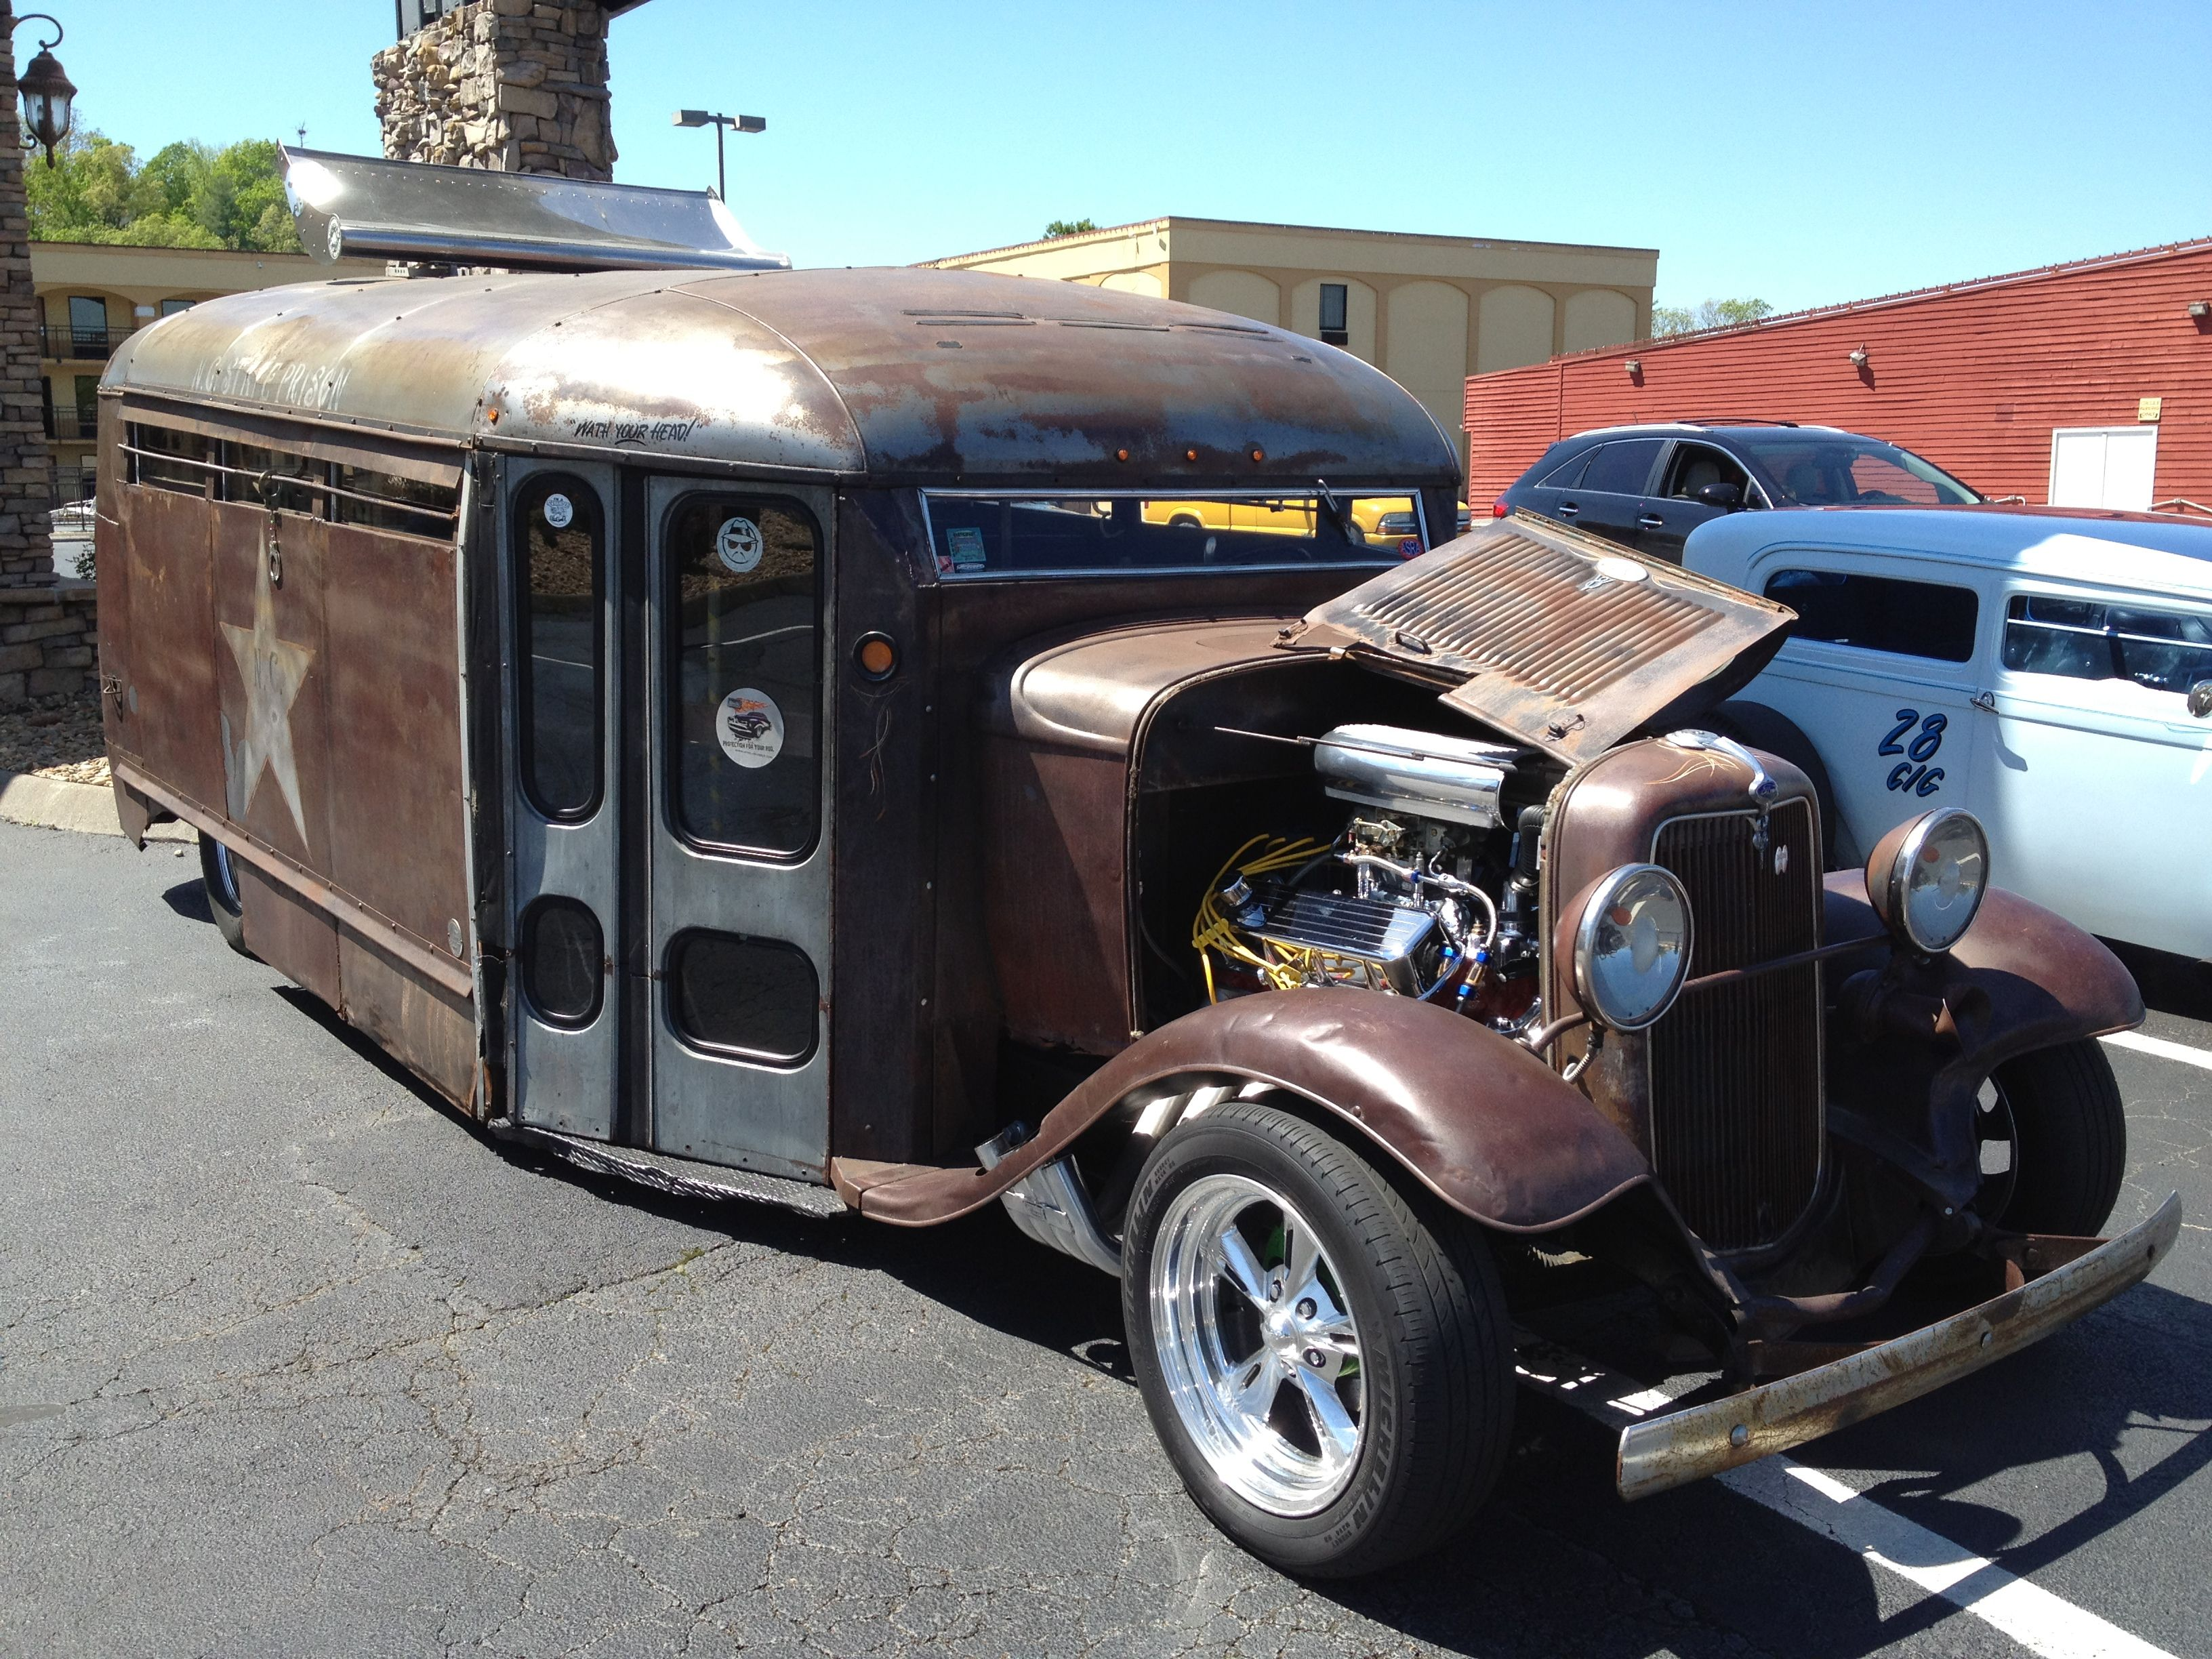 Old bus from NC State Prison turned into an awesome hot rod ...